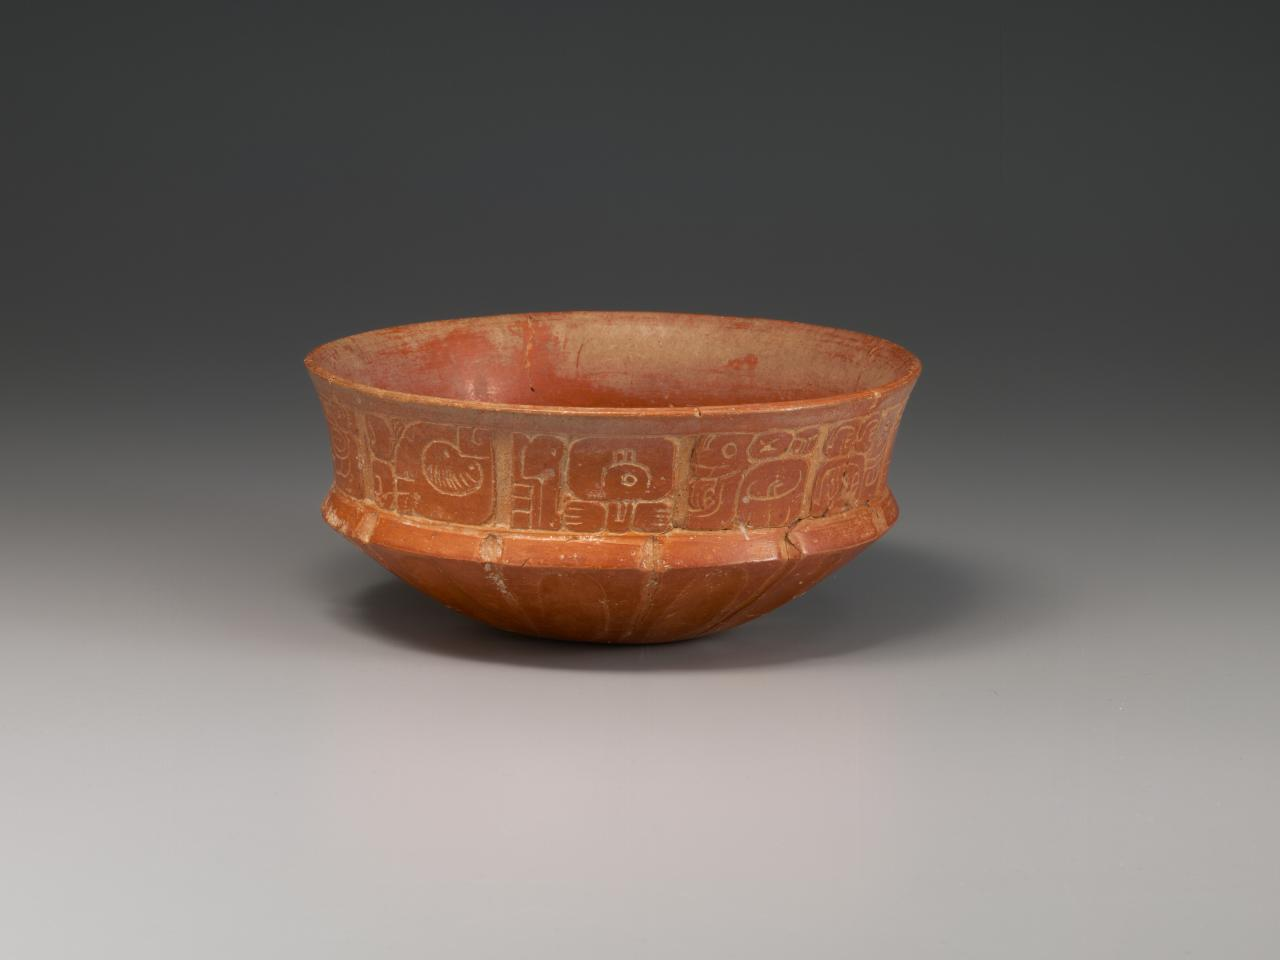 Carved glyph bowl